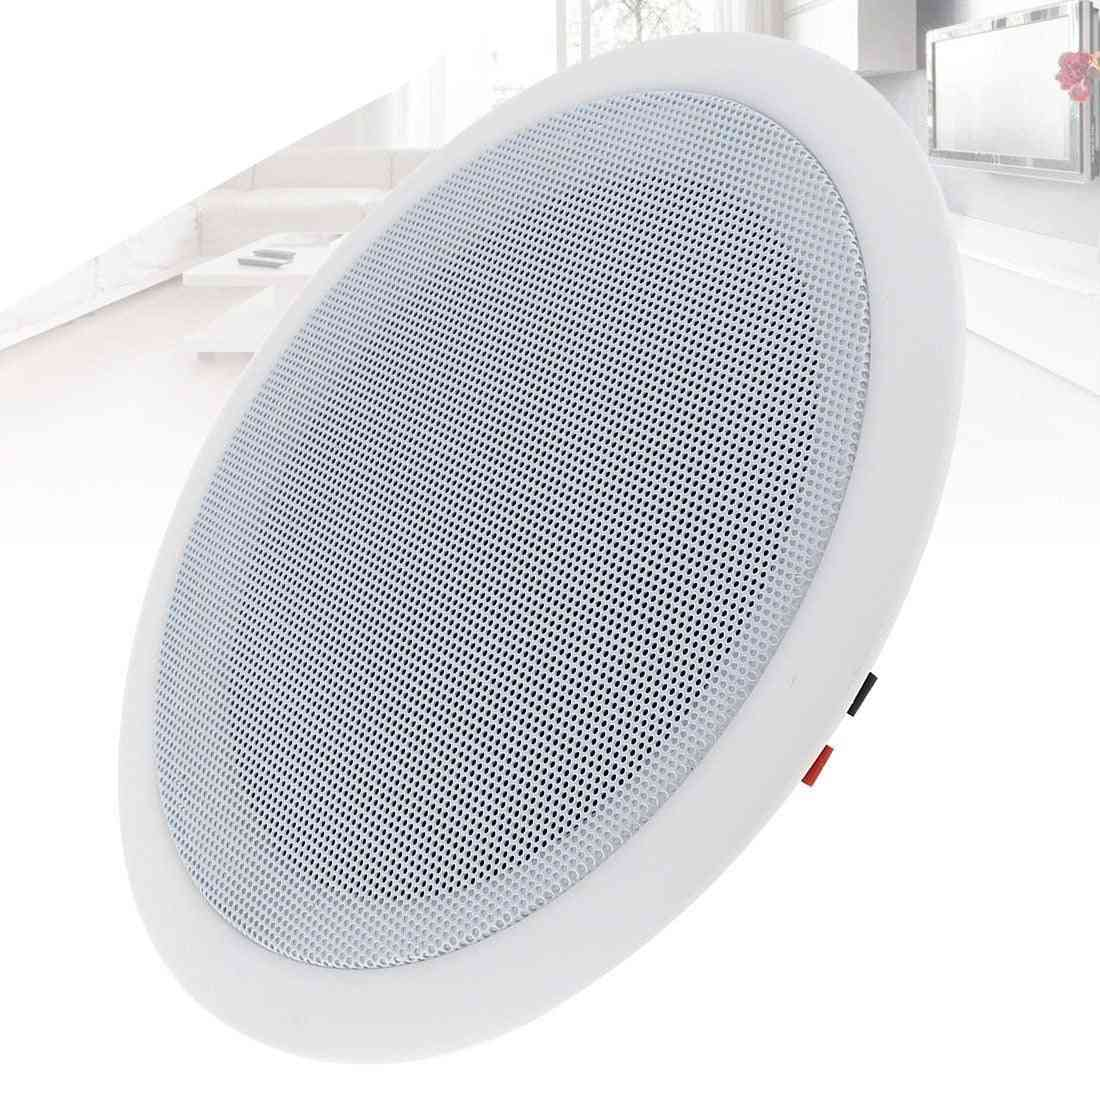 5w Wall-mounted Ceiling Speaker For Home